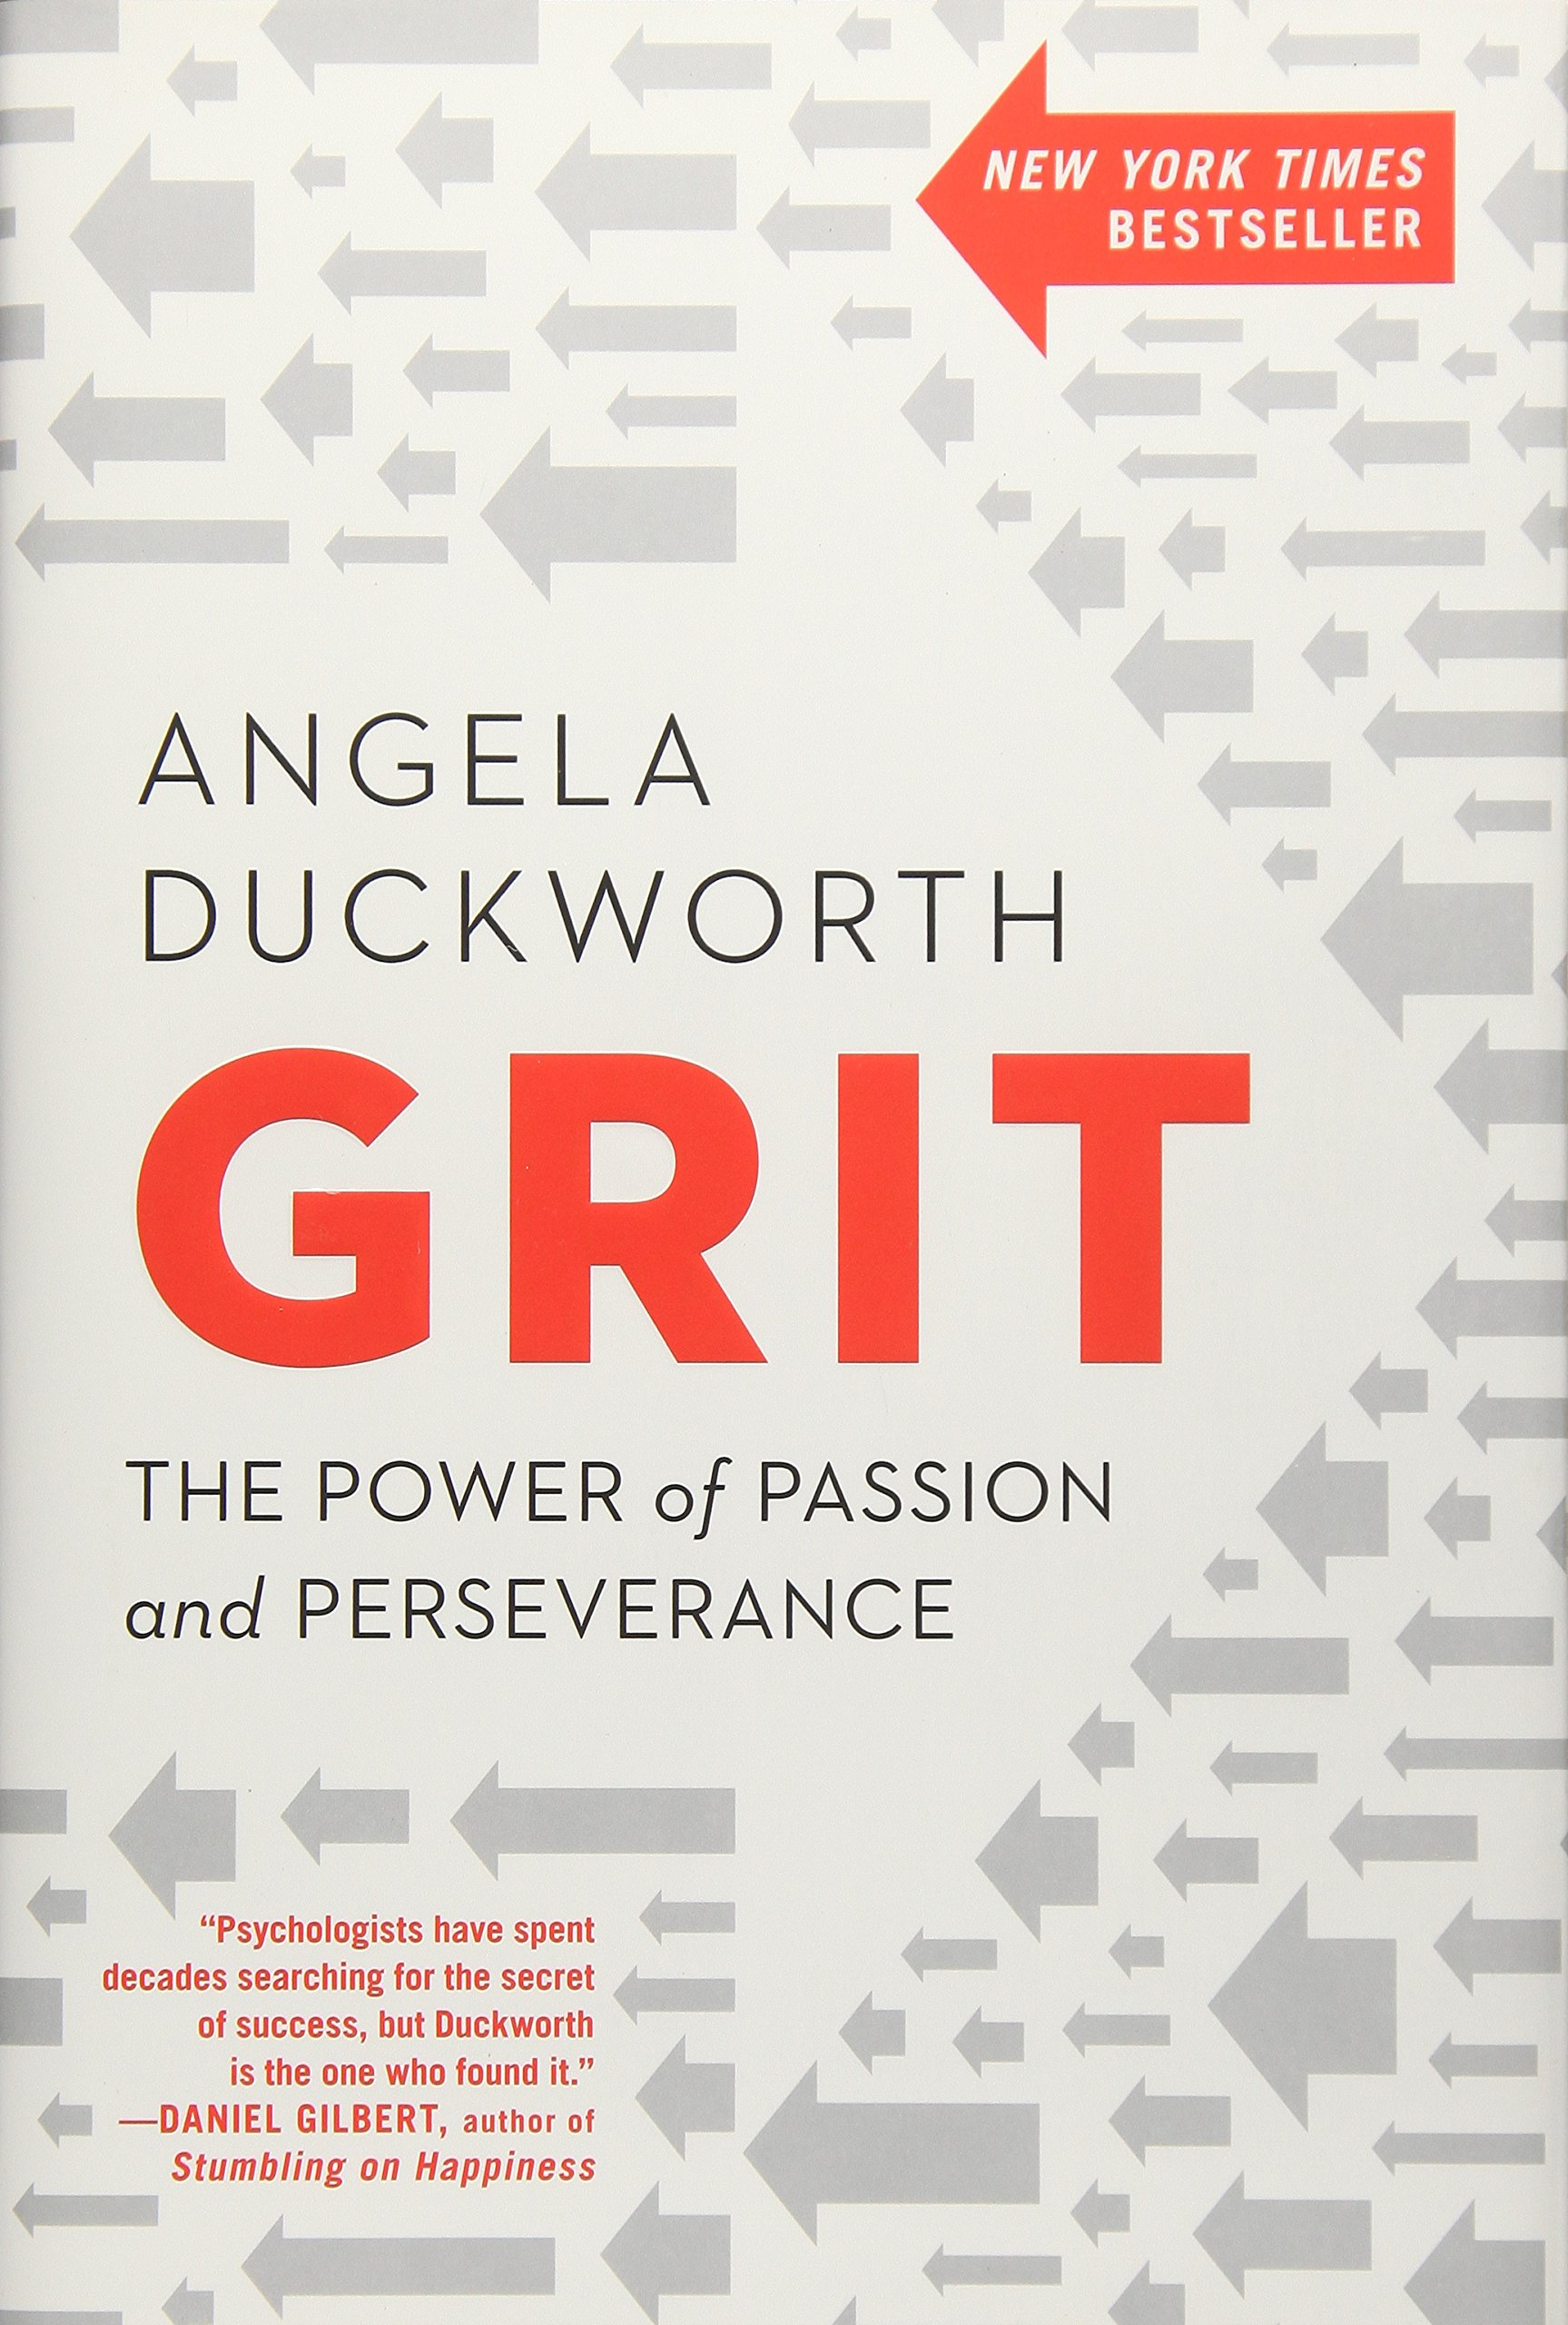 Grit: The Power of Passion and Perseverance: Amazon.es: Angela Duckworth: Libros en idiomas extranjeros